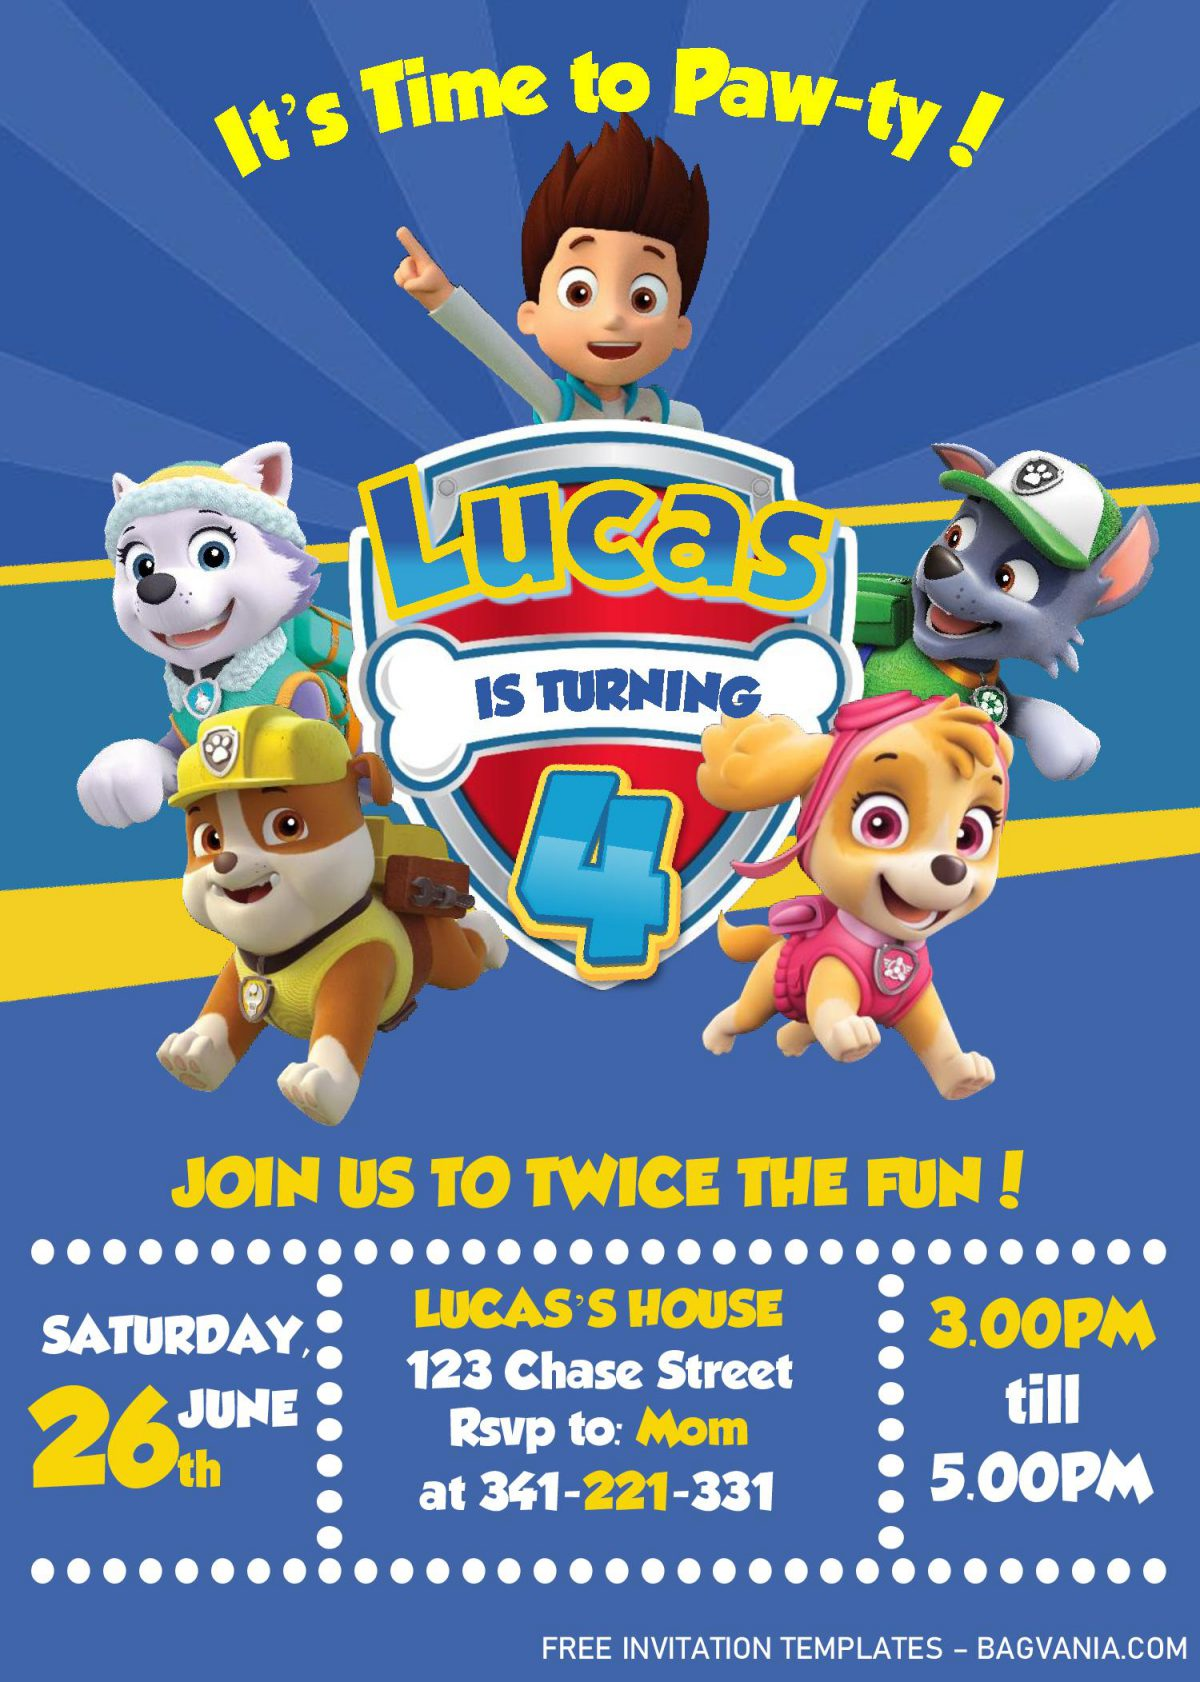 Paw Patrol Invitation Templates - Editable With MS Word and has skye and chase